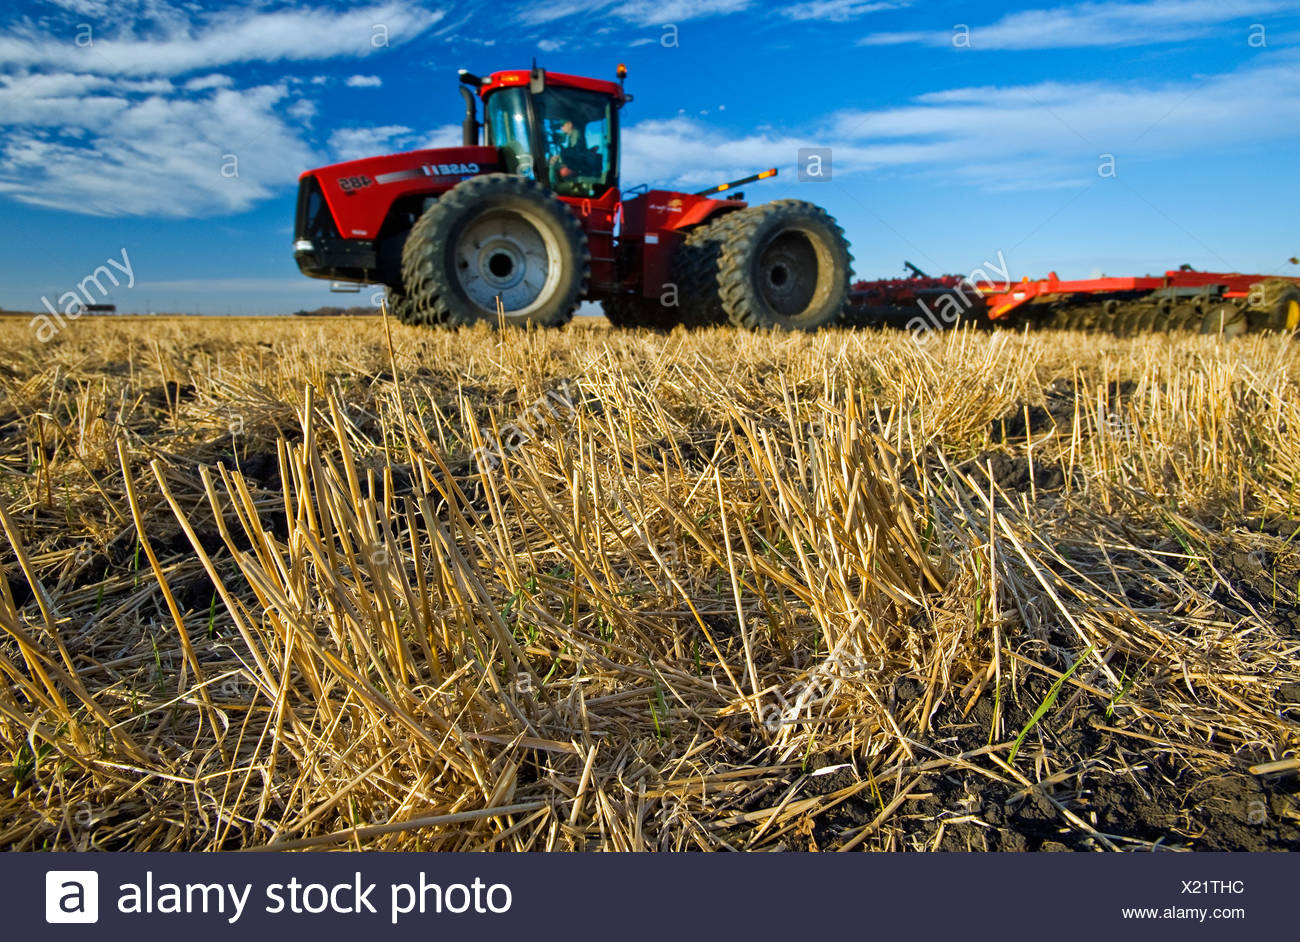 Close-up of wheat stubble with an out of focus tractor pulling cultivating equipment in the background / Manitoba, Canada. - Stock Image